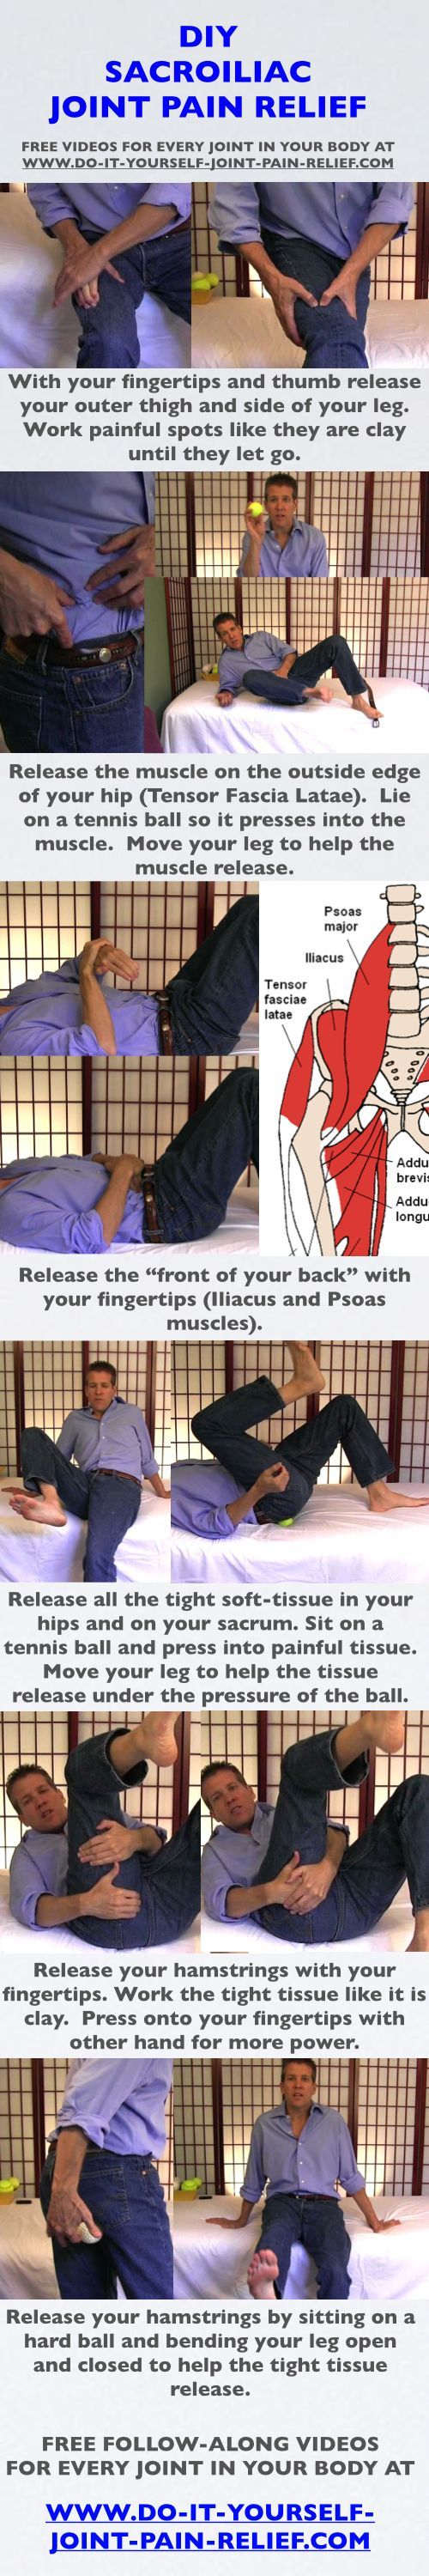 Diy sacroiliac joint pain relief back pain treatments pinterest diy sacroiliac joint pain relief back pain treatments pinterest pain relief exercises and si joint solutioingenieria Image collections